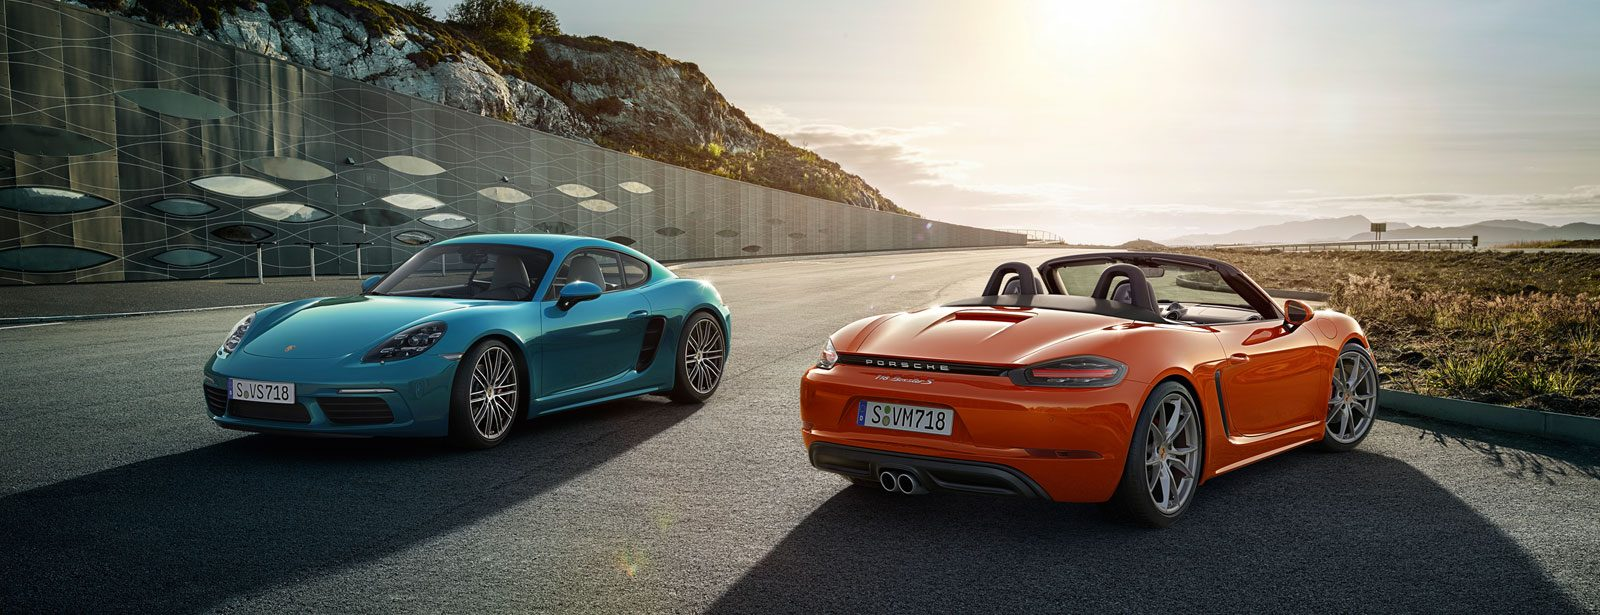 718-Boxster-S-718-Cayman-S